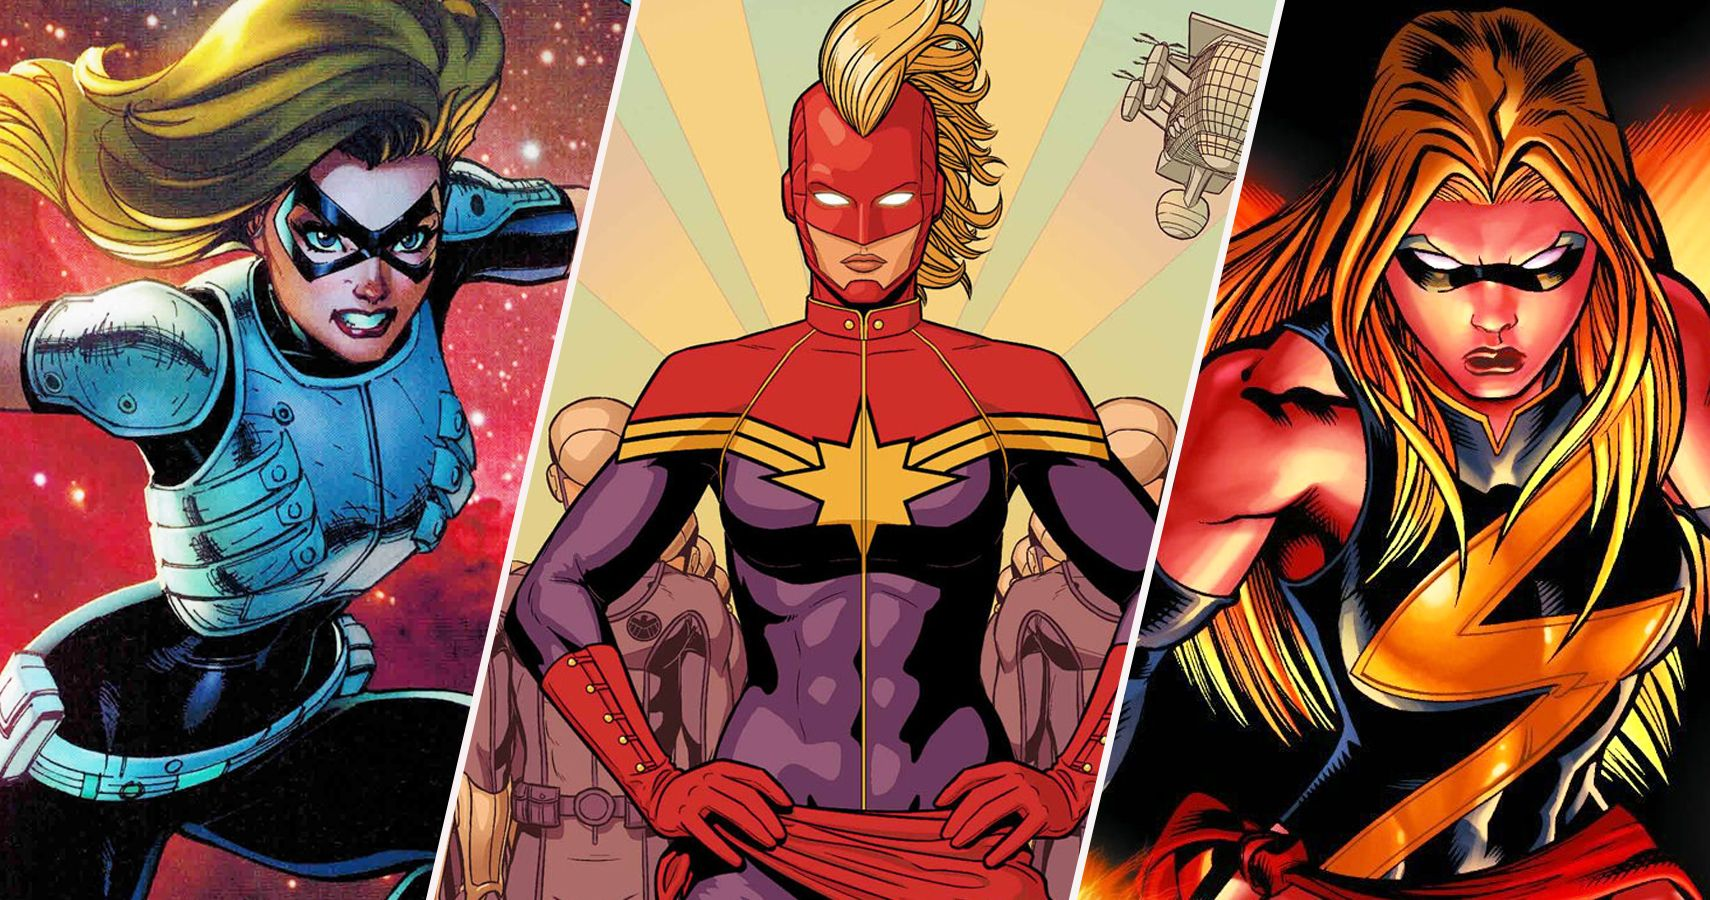 Looking Marvelous 19 Captain Marvel Costumes Ranked Cbr Additional photography / transportation coordinator: captain marvel costumes ranked